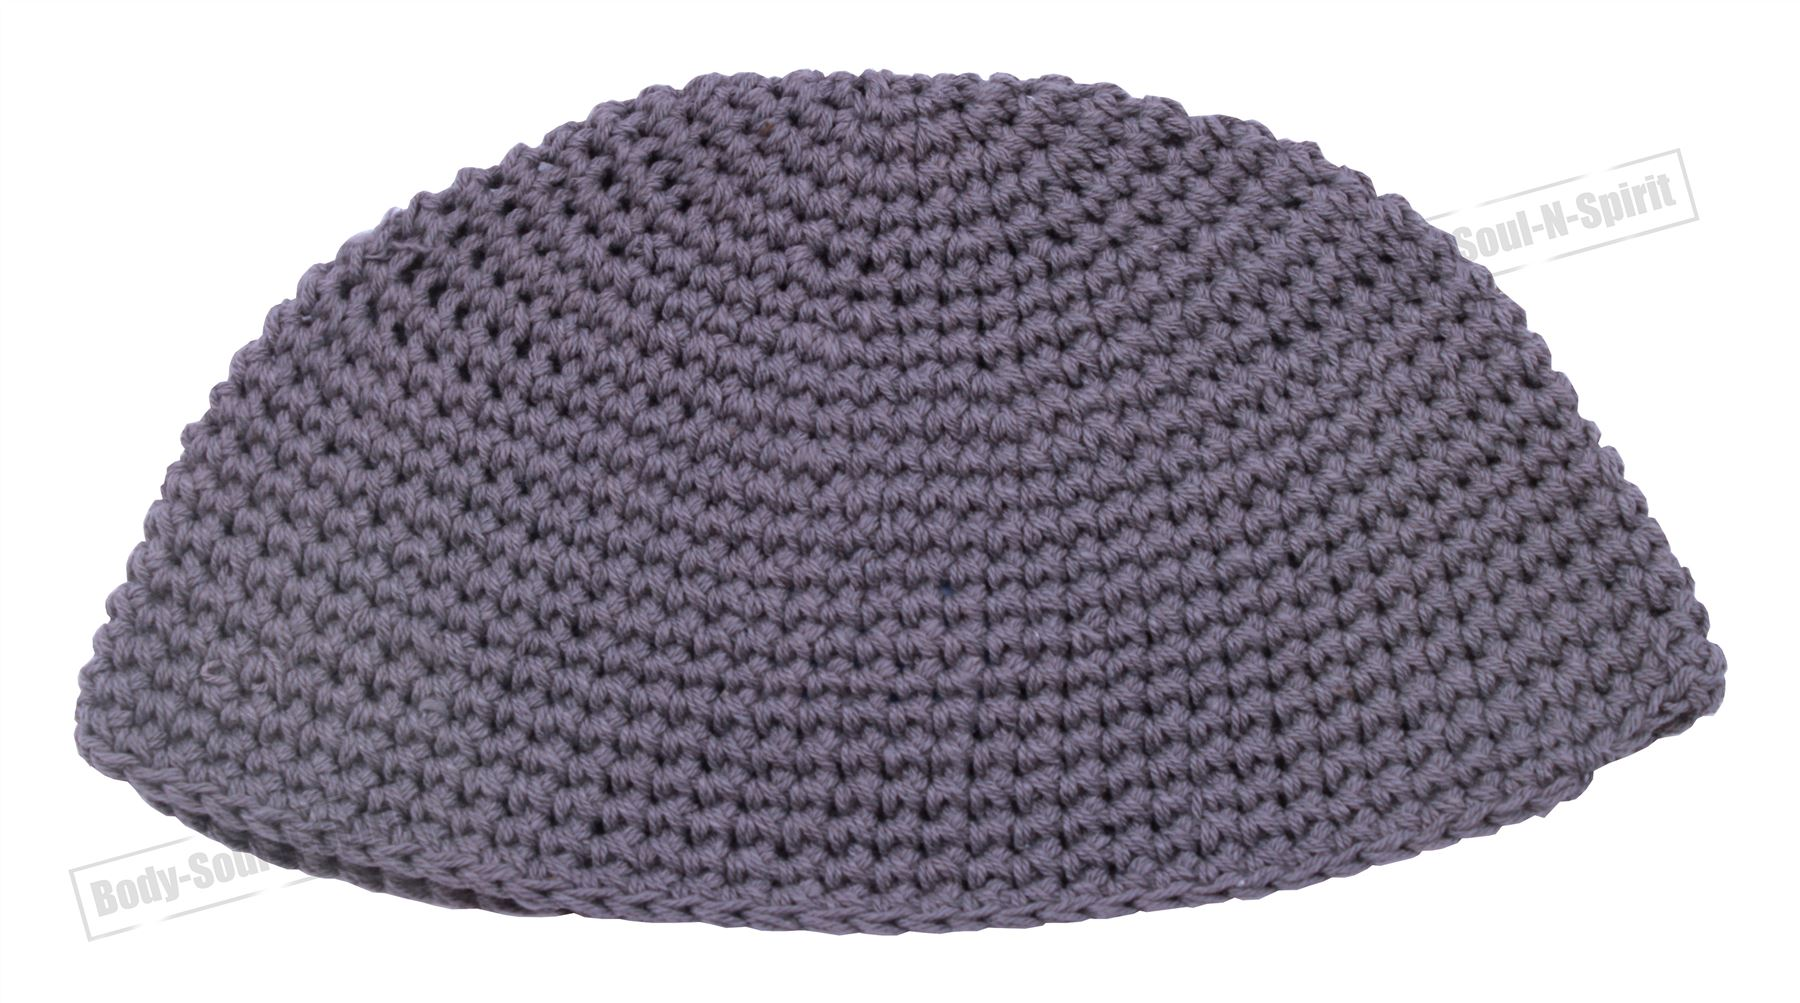 Gray Knitted Kippah Yarmulke Tribal Jewish Hat covering Cap Holy ...